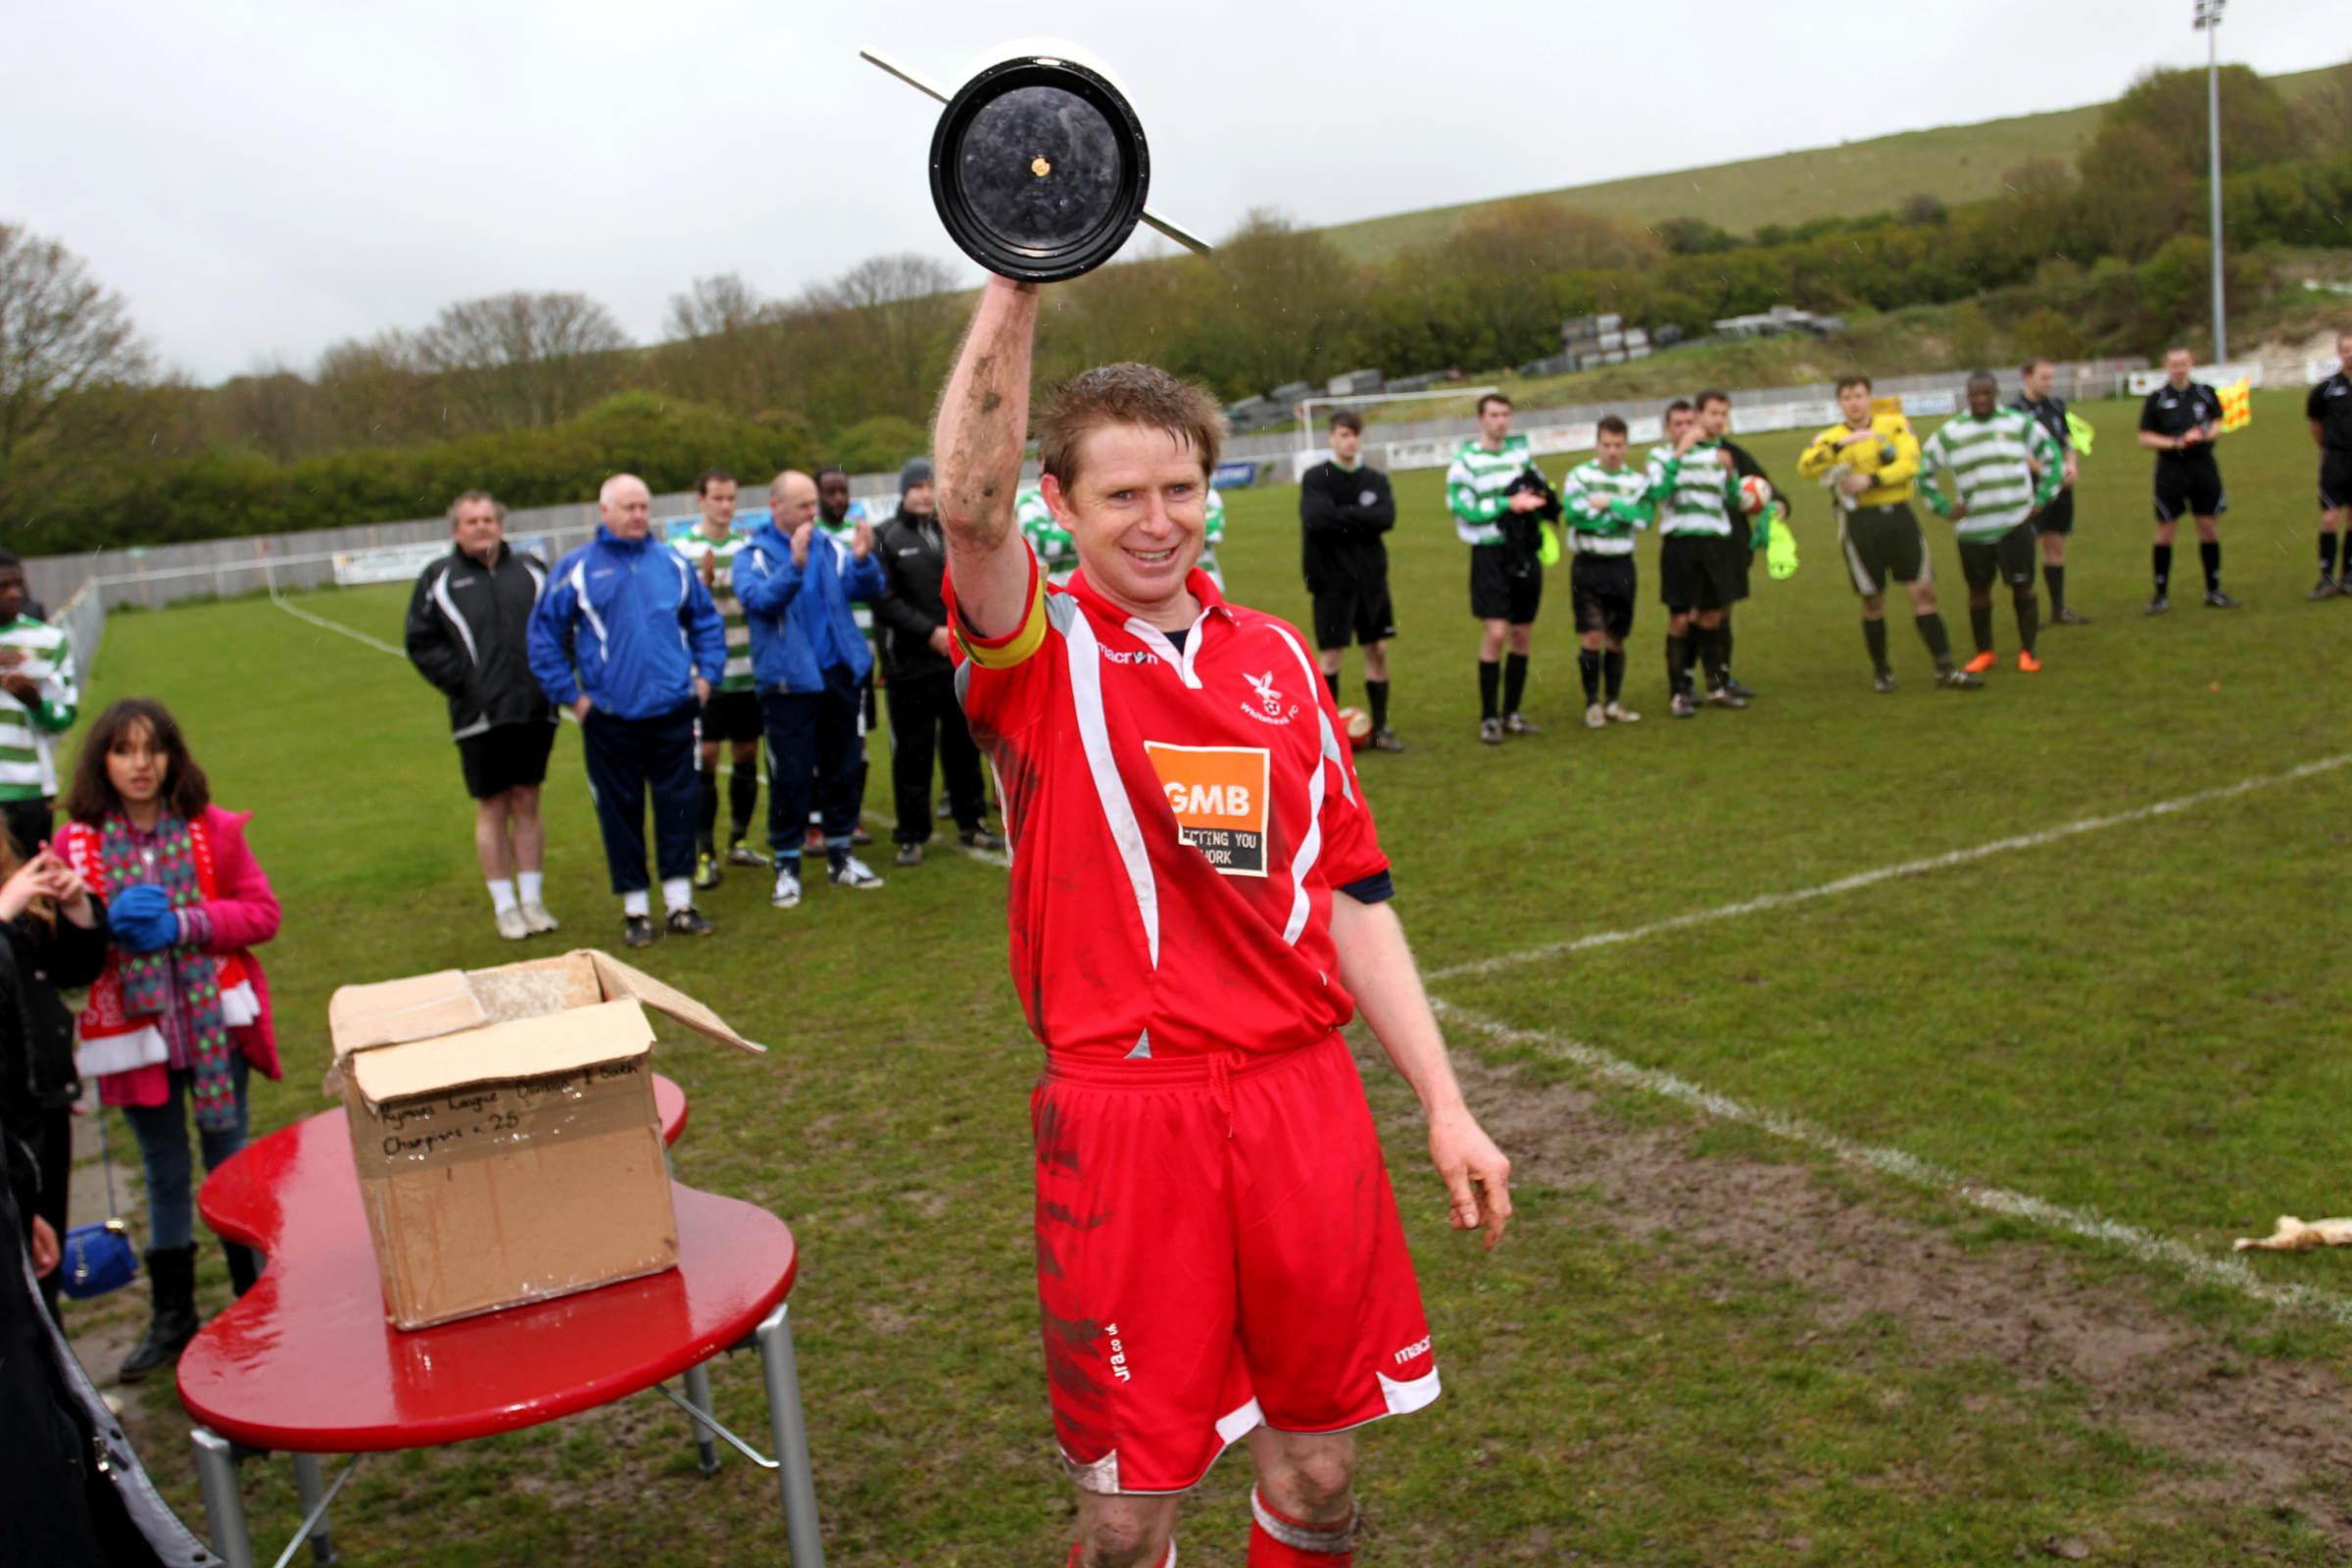 Paul Armstrong pictured during his time with Whitehawk